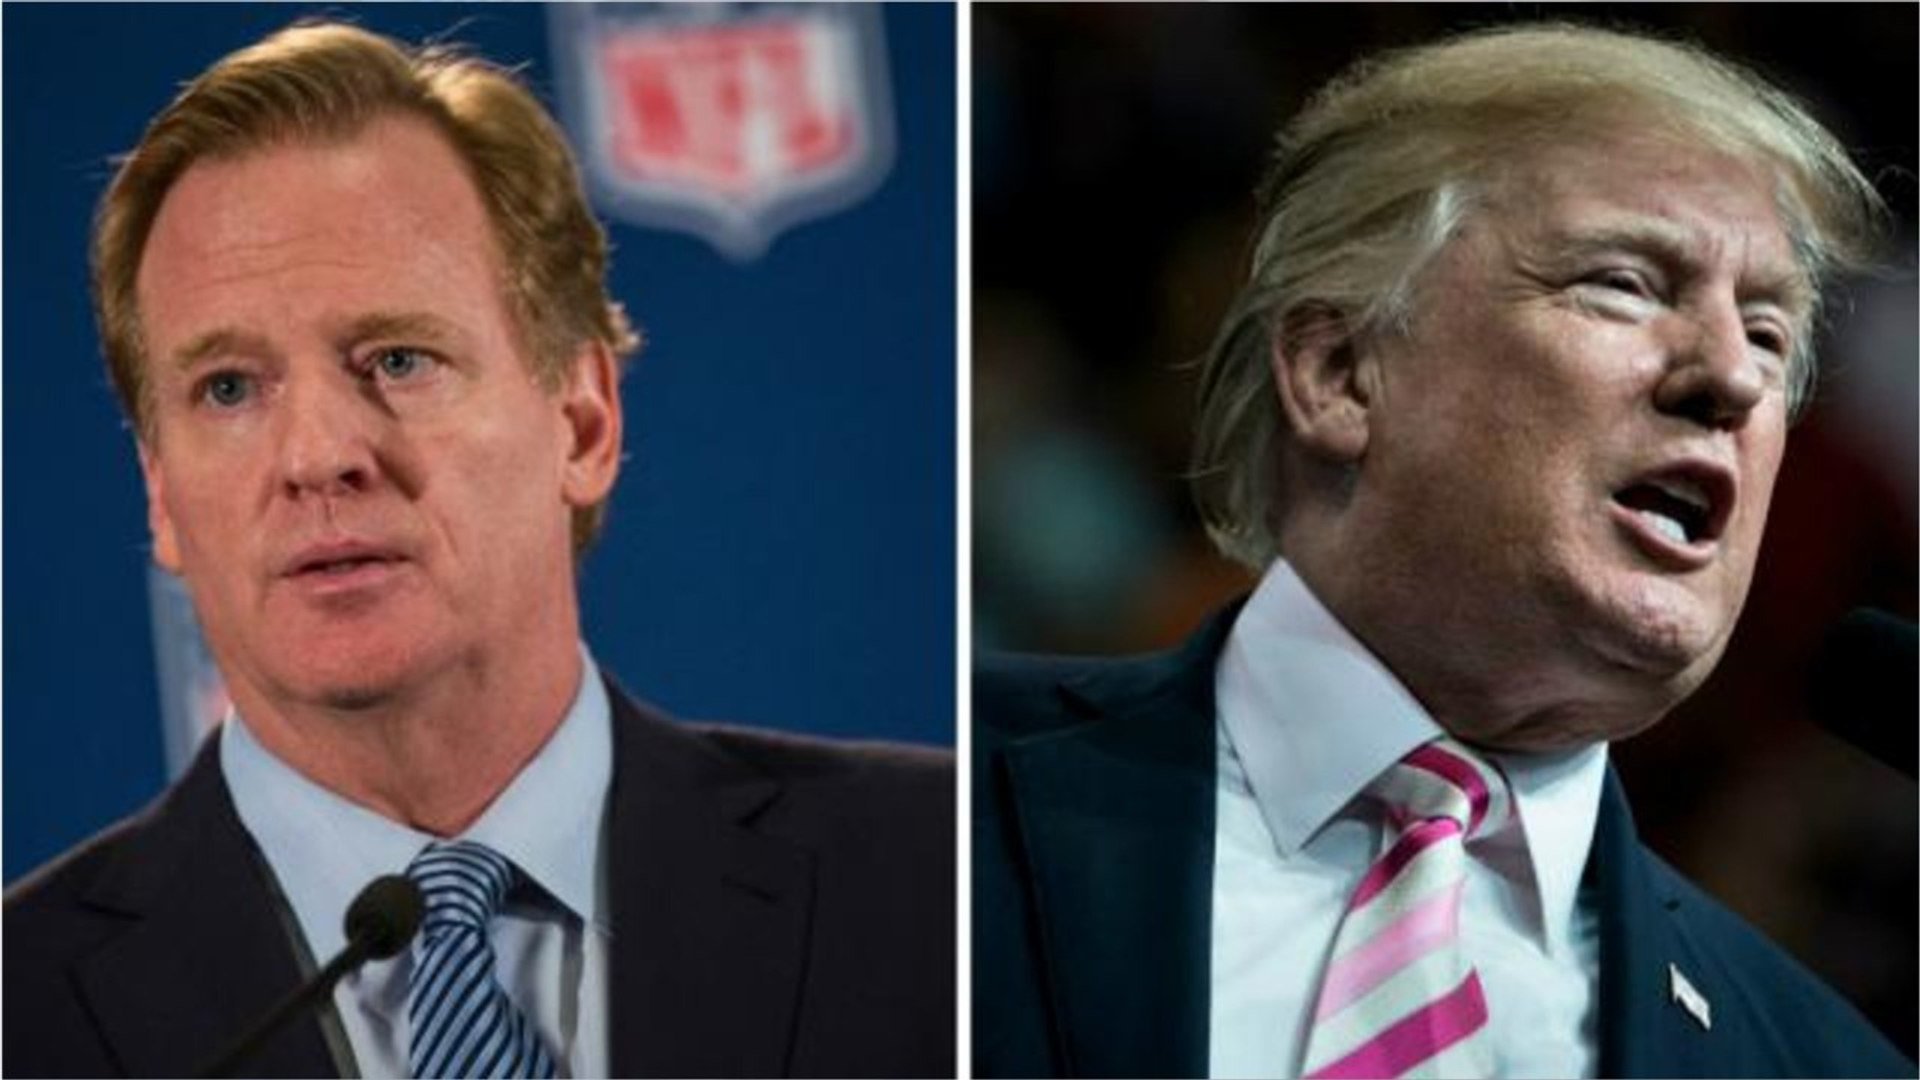 Roger Goodell and NFL Reject Trump's Call to Fire Players who Kneel During National Anthem